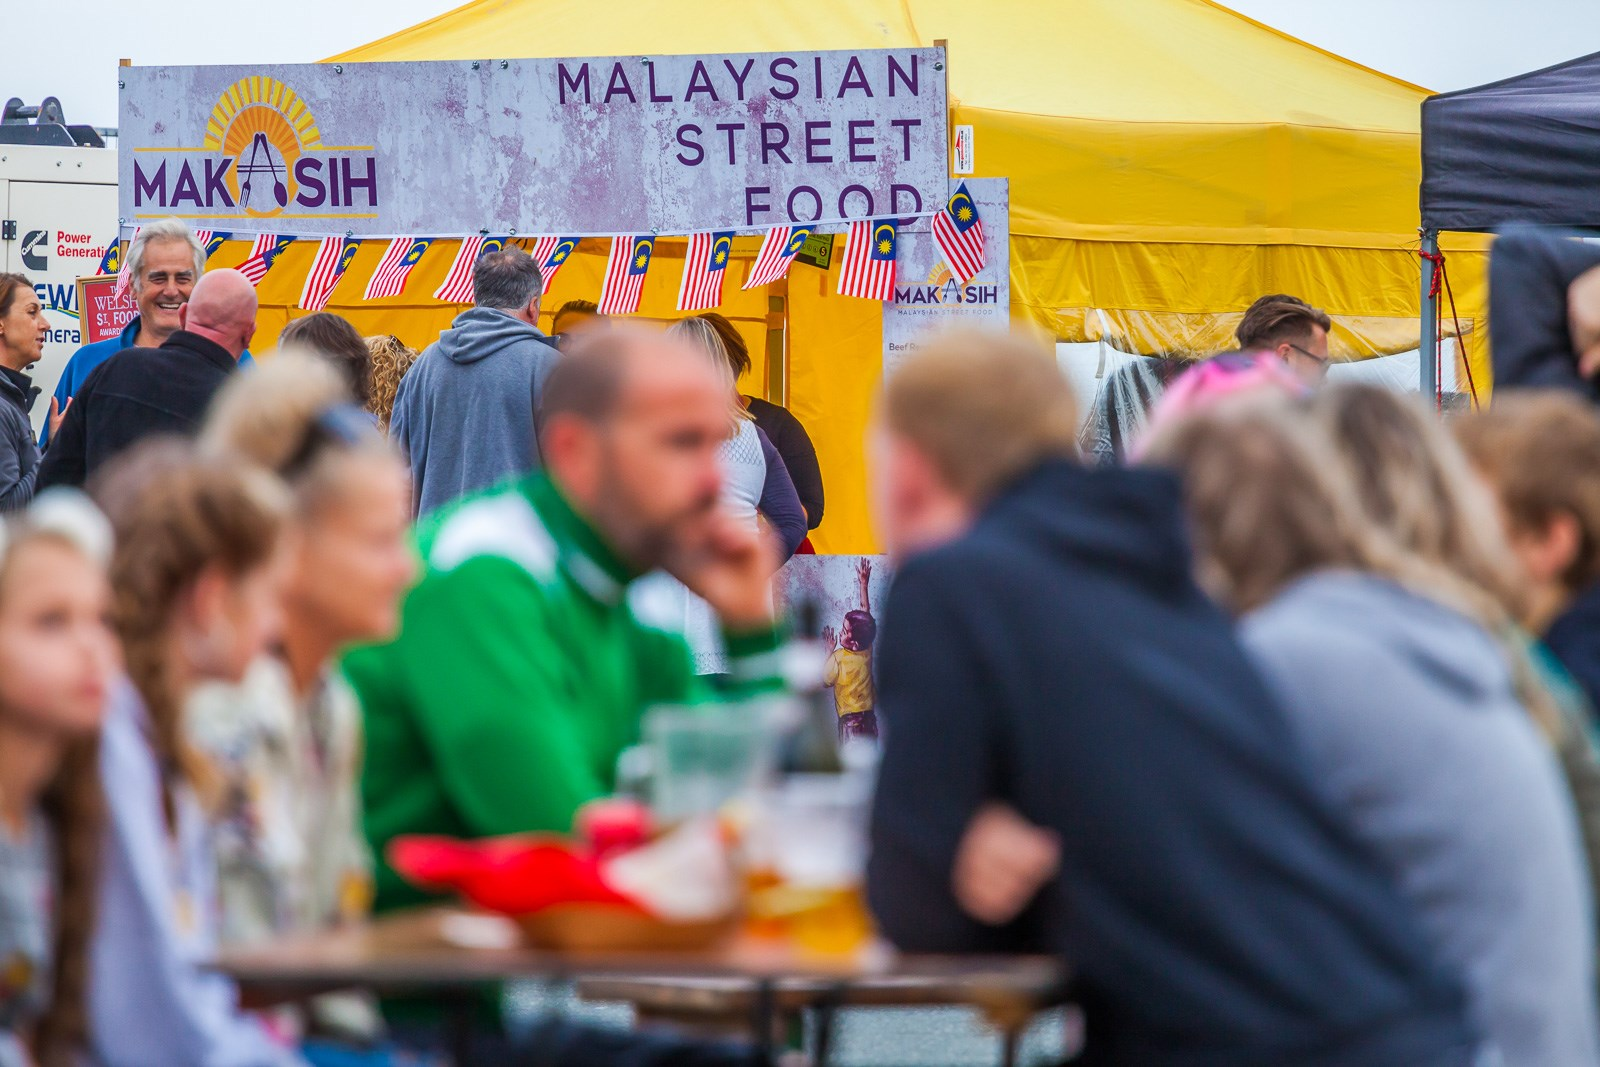 Welsh Street Food Awards